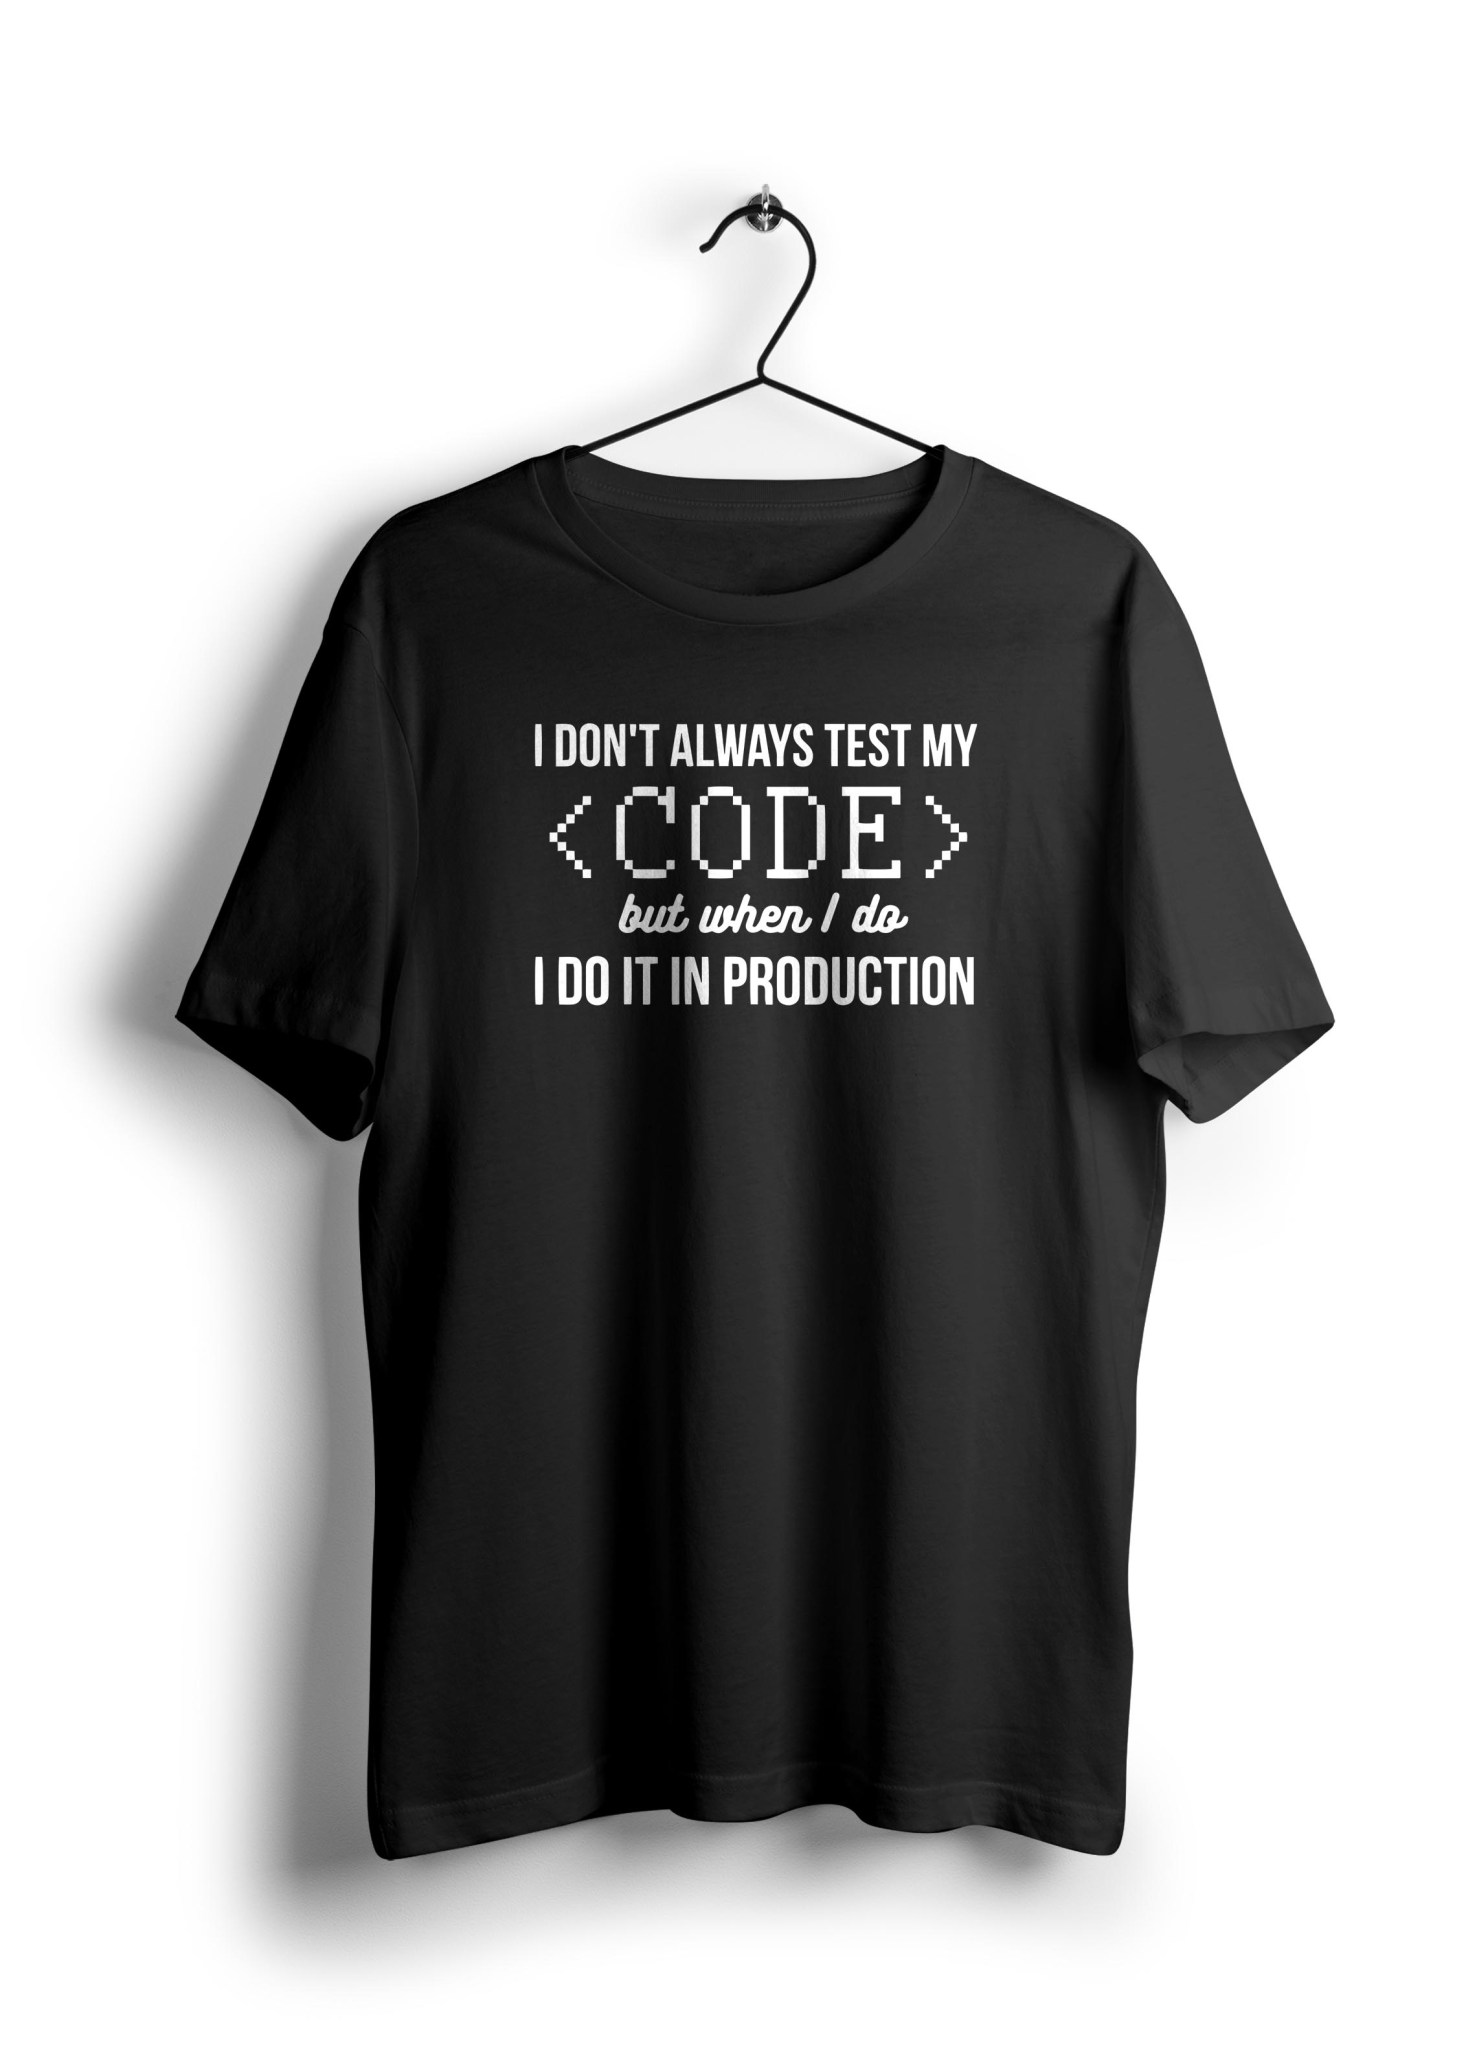 i don't always test my code but when i do i production